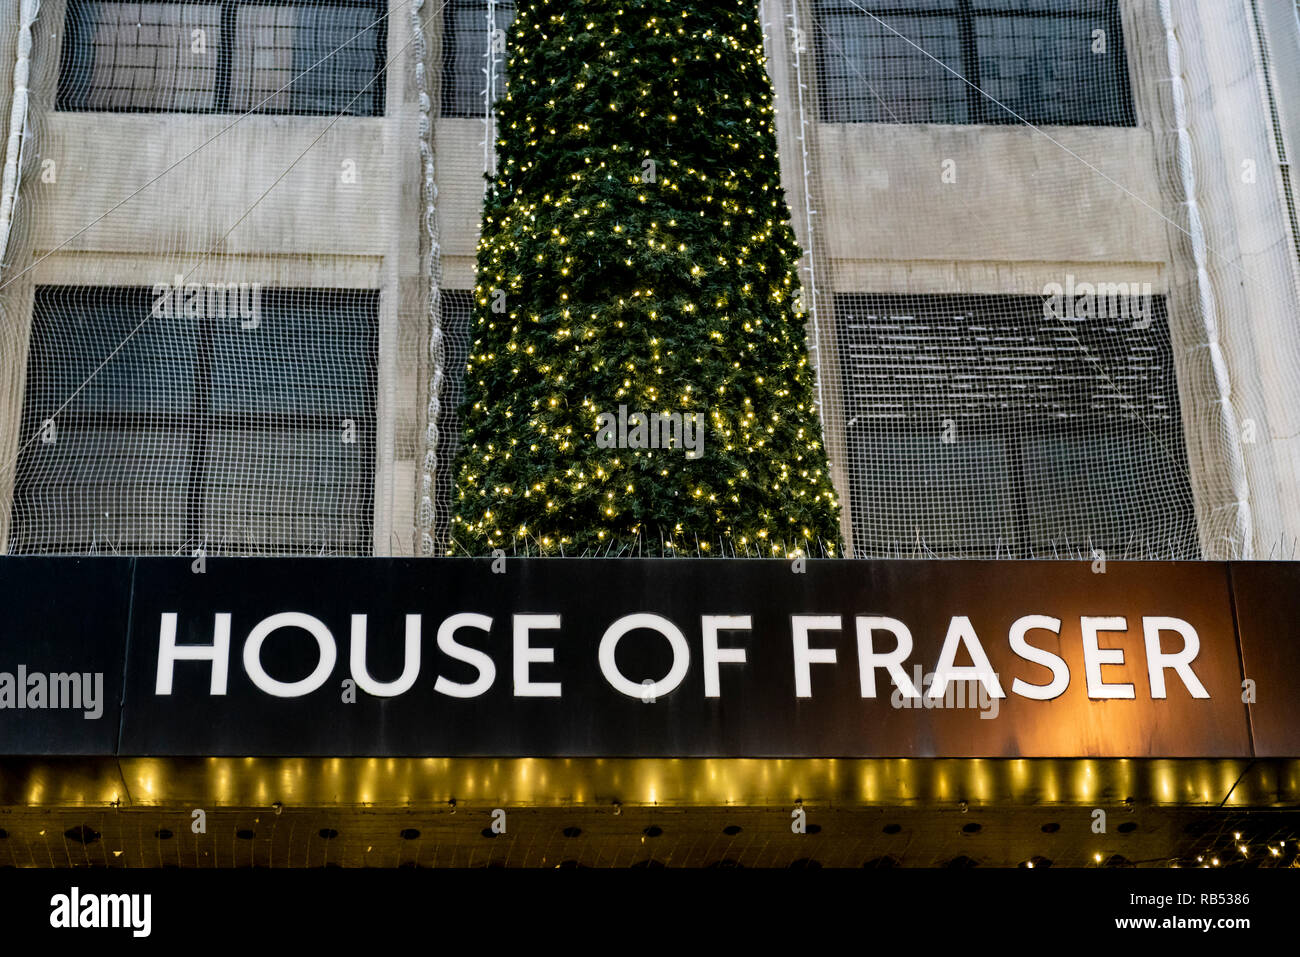 House of Fraser store in Oxford Street London, with Christmas decorations. - Stock Image